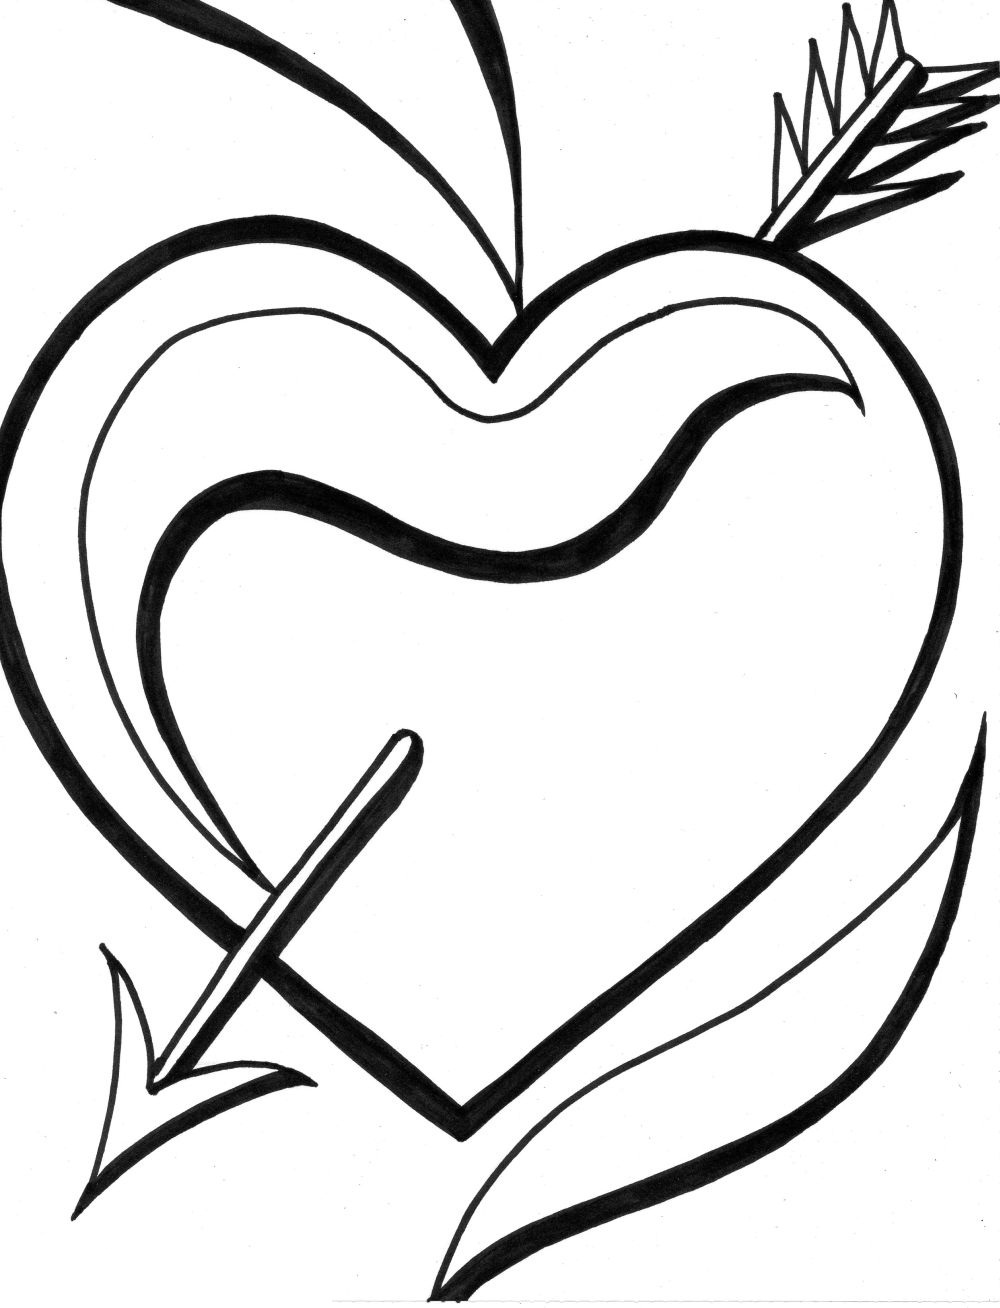 cool heart coloring pages friendship day special love heart drawing love heart coloring heart cool pages